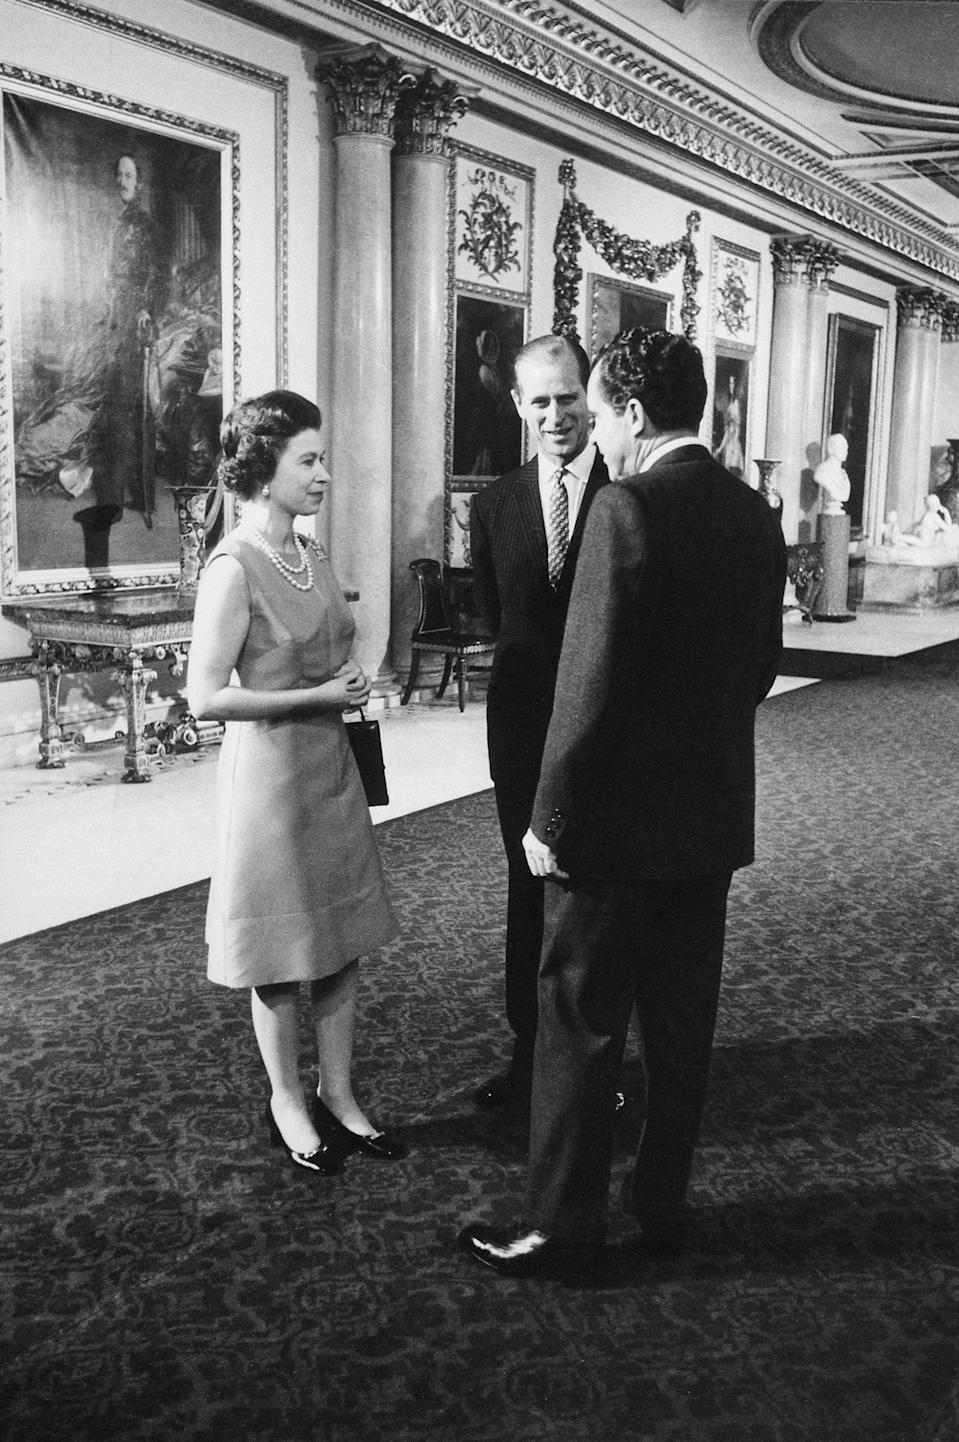 President Nixon chats with Queen Elizabeth II and Prince Phillip at Buckingham Palace, 25 February 1969Everett/Shutterstock